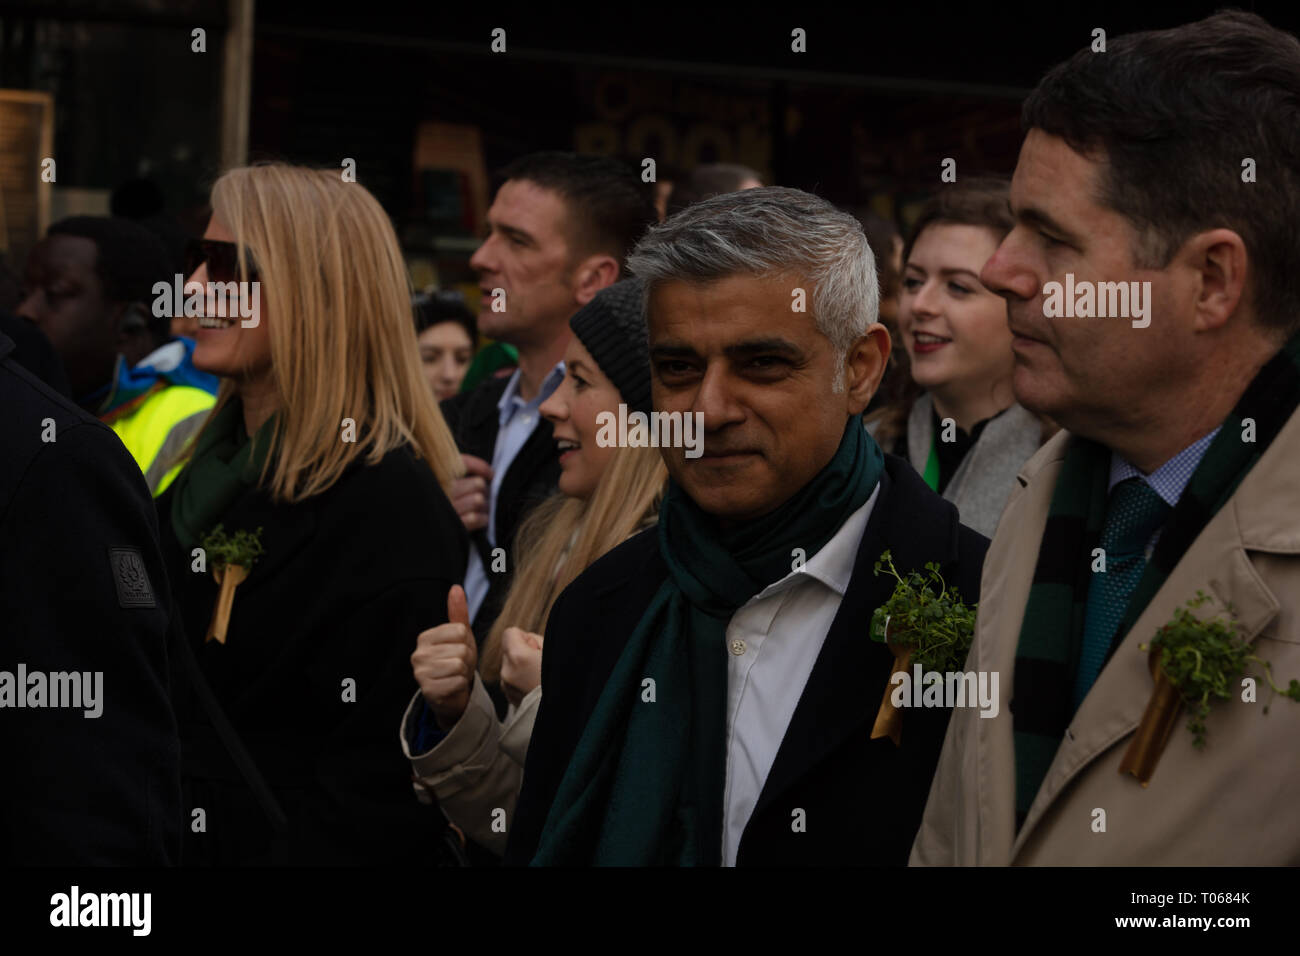 London, UK. 17th March, 2019. Mayor of London, Sadiq Khan, with a green scarf, walks at the front of the St Patrick's Day Parade London near Piccadilly, UK, today. Credit: Joe Kuis / Alamy Live News - Stock Image